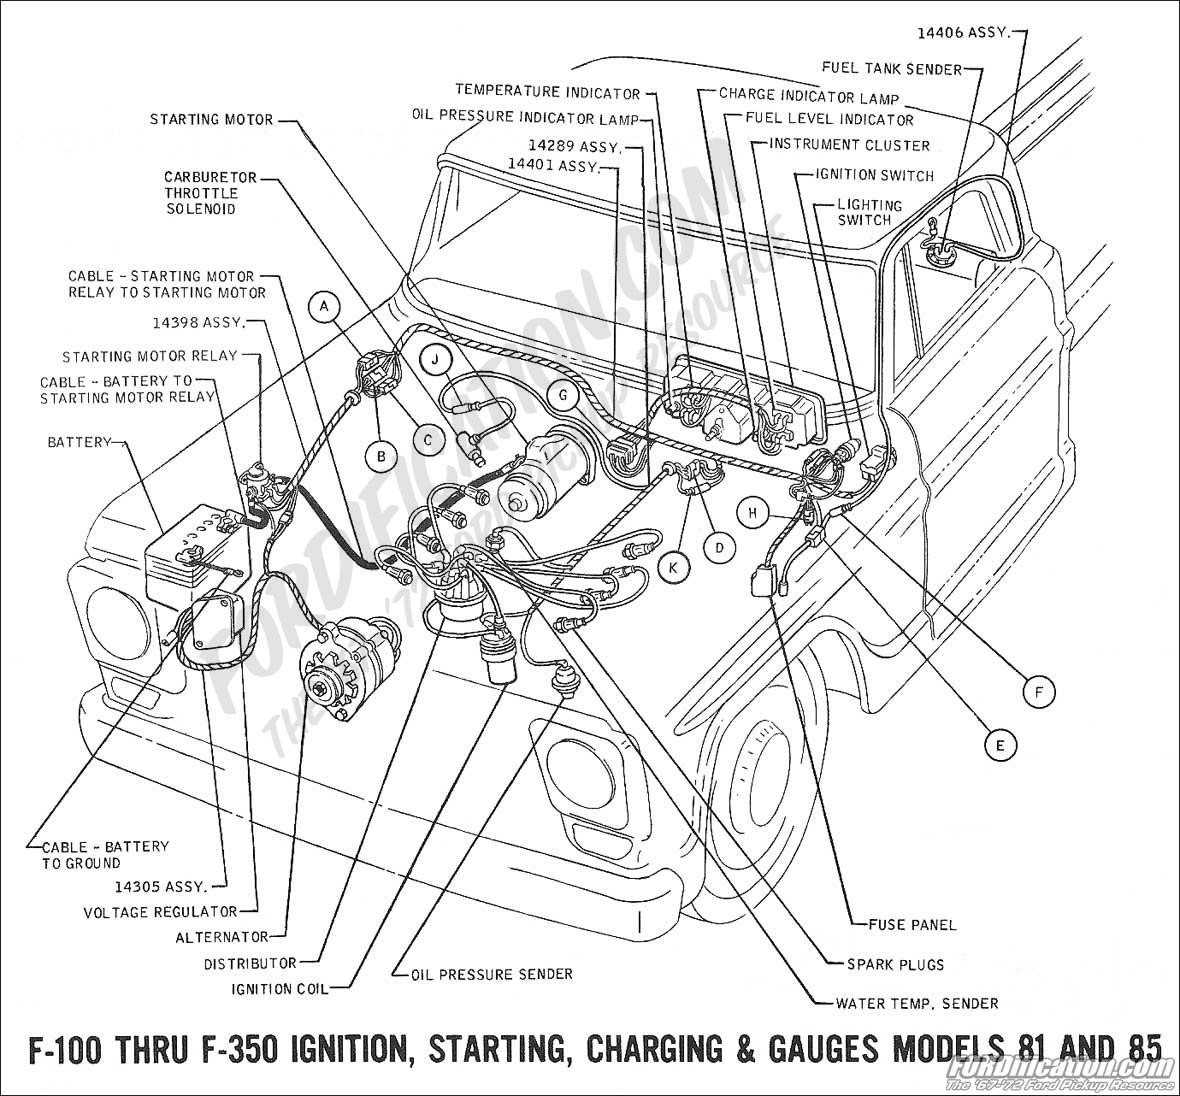 wiring 1969charging ford truck technical drawings and schematics section h wiring 1969 Ford F100 Steering Column Wiring Diagram at crackthecode.co